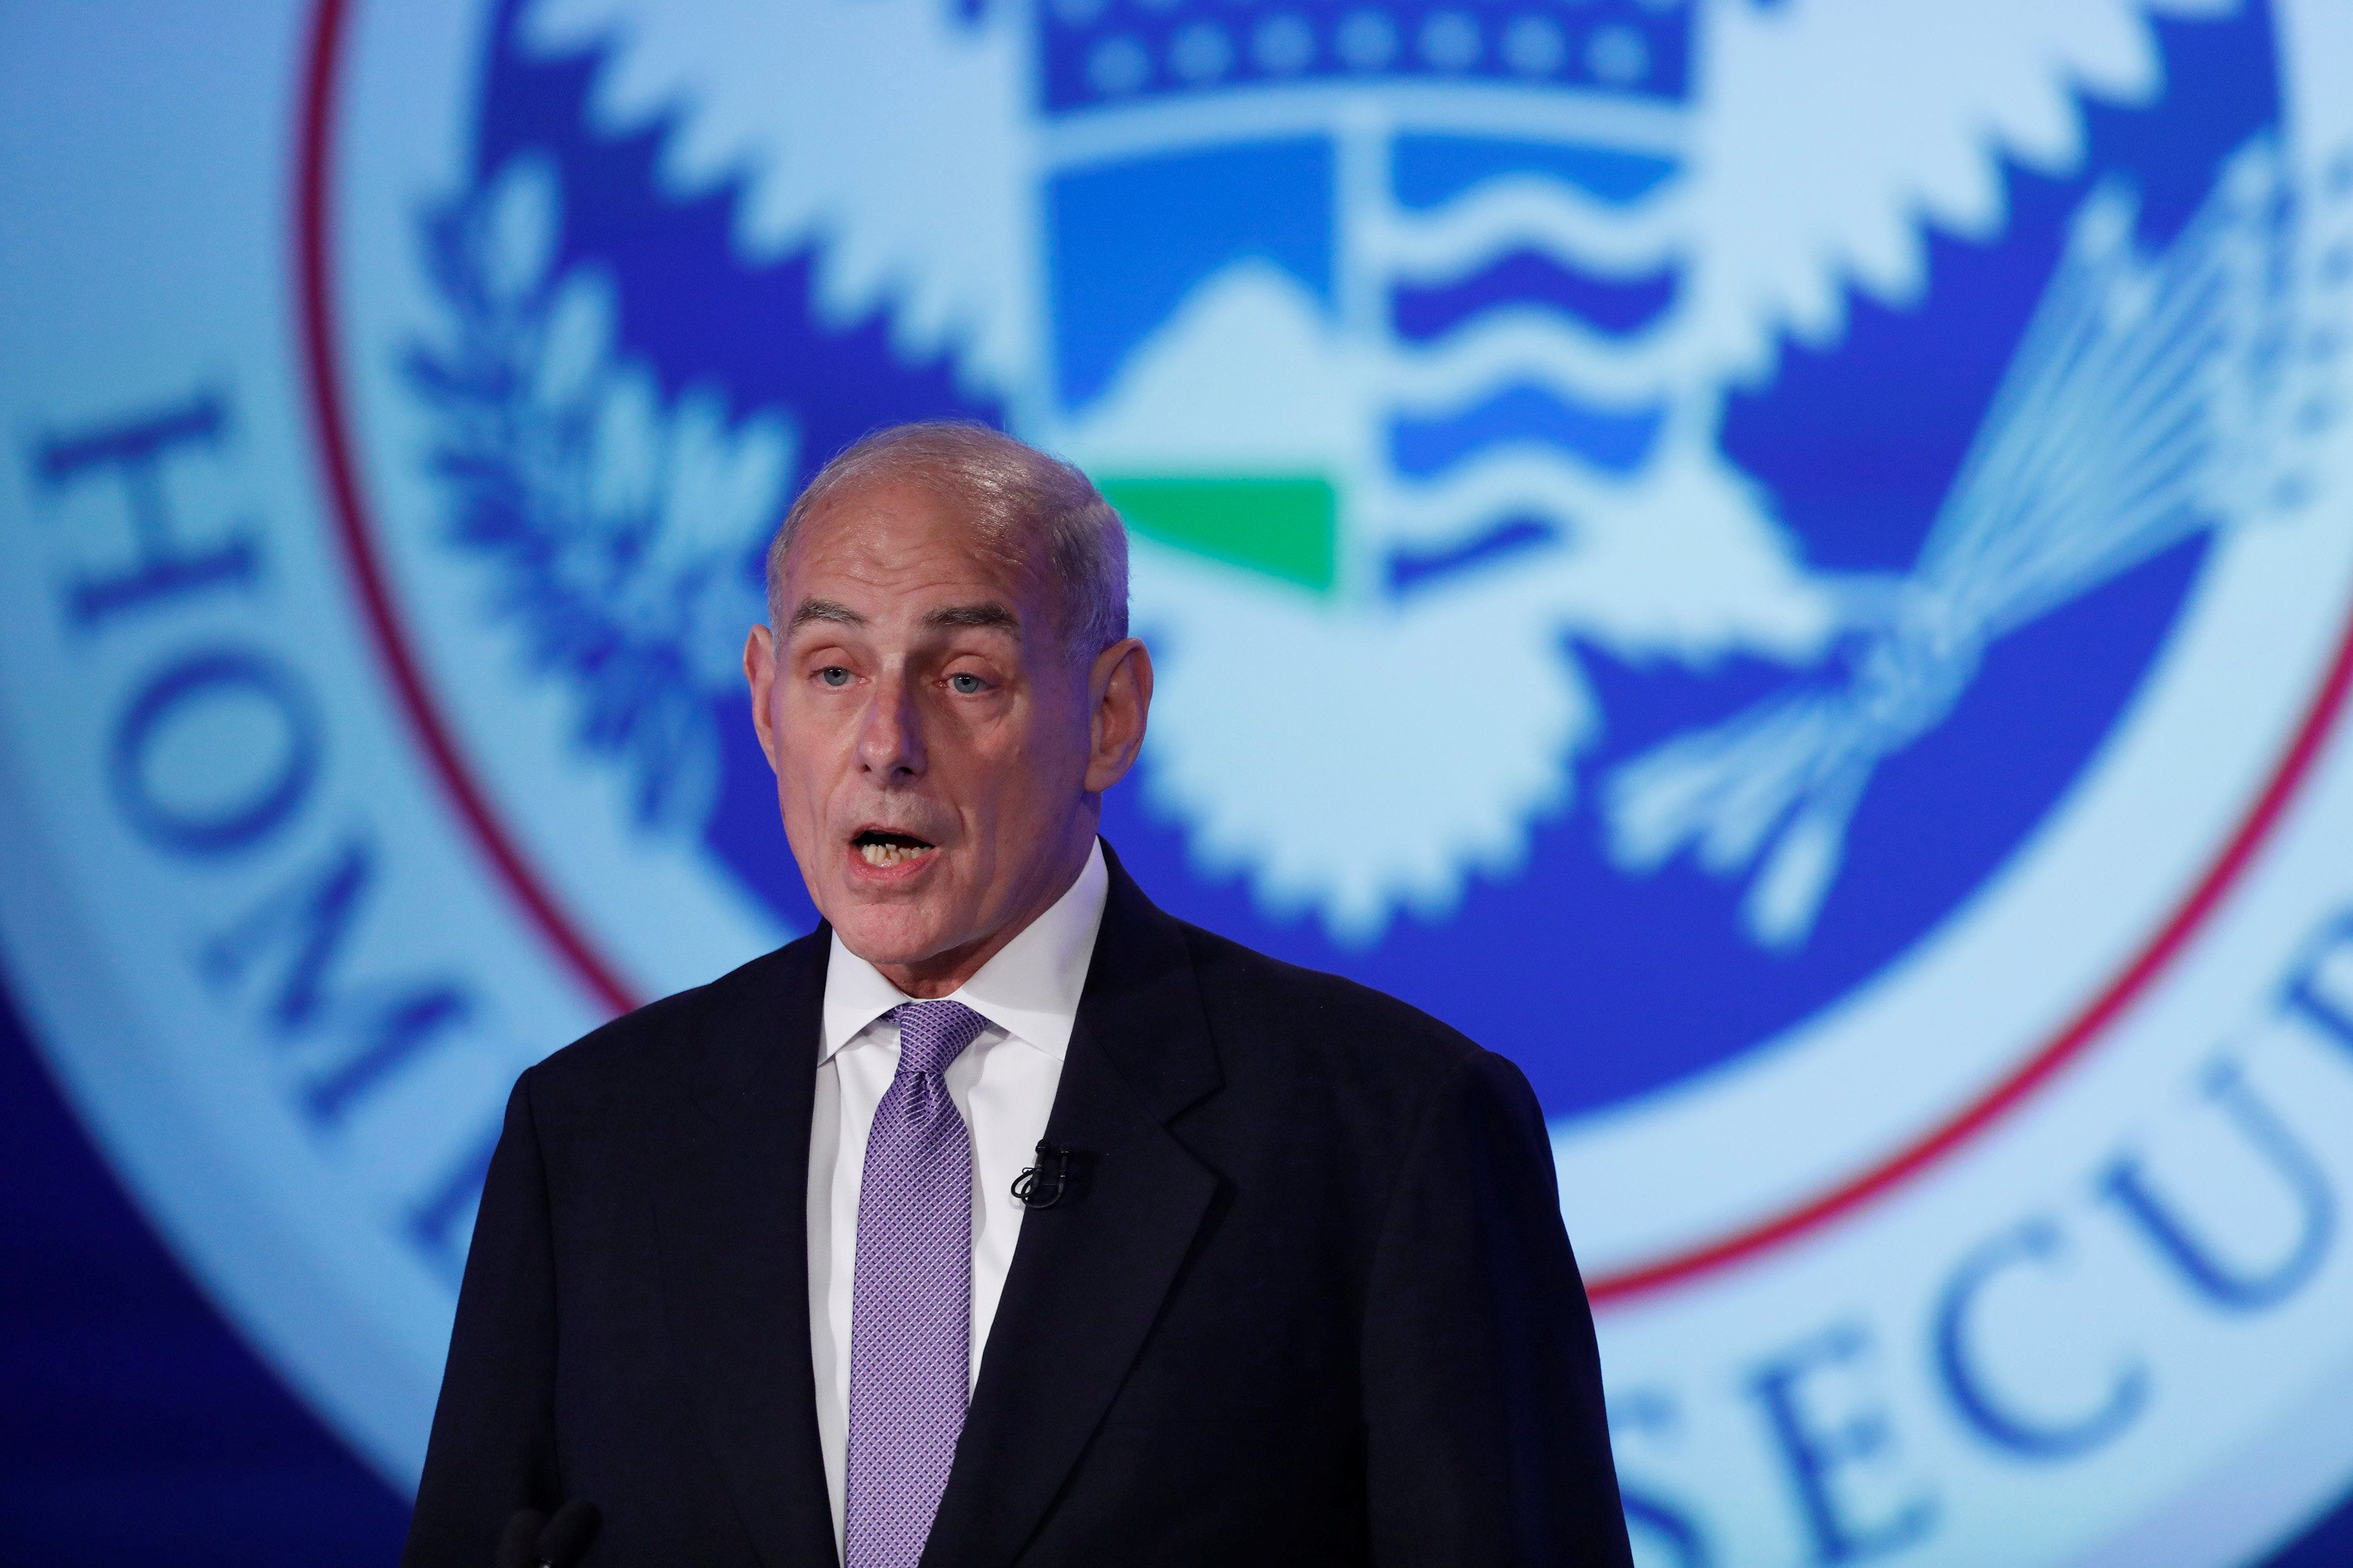 Homeland Security Secretary John Kelly says homegrown terrorist attacks are the most common, but he doesn't know how to stop